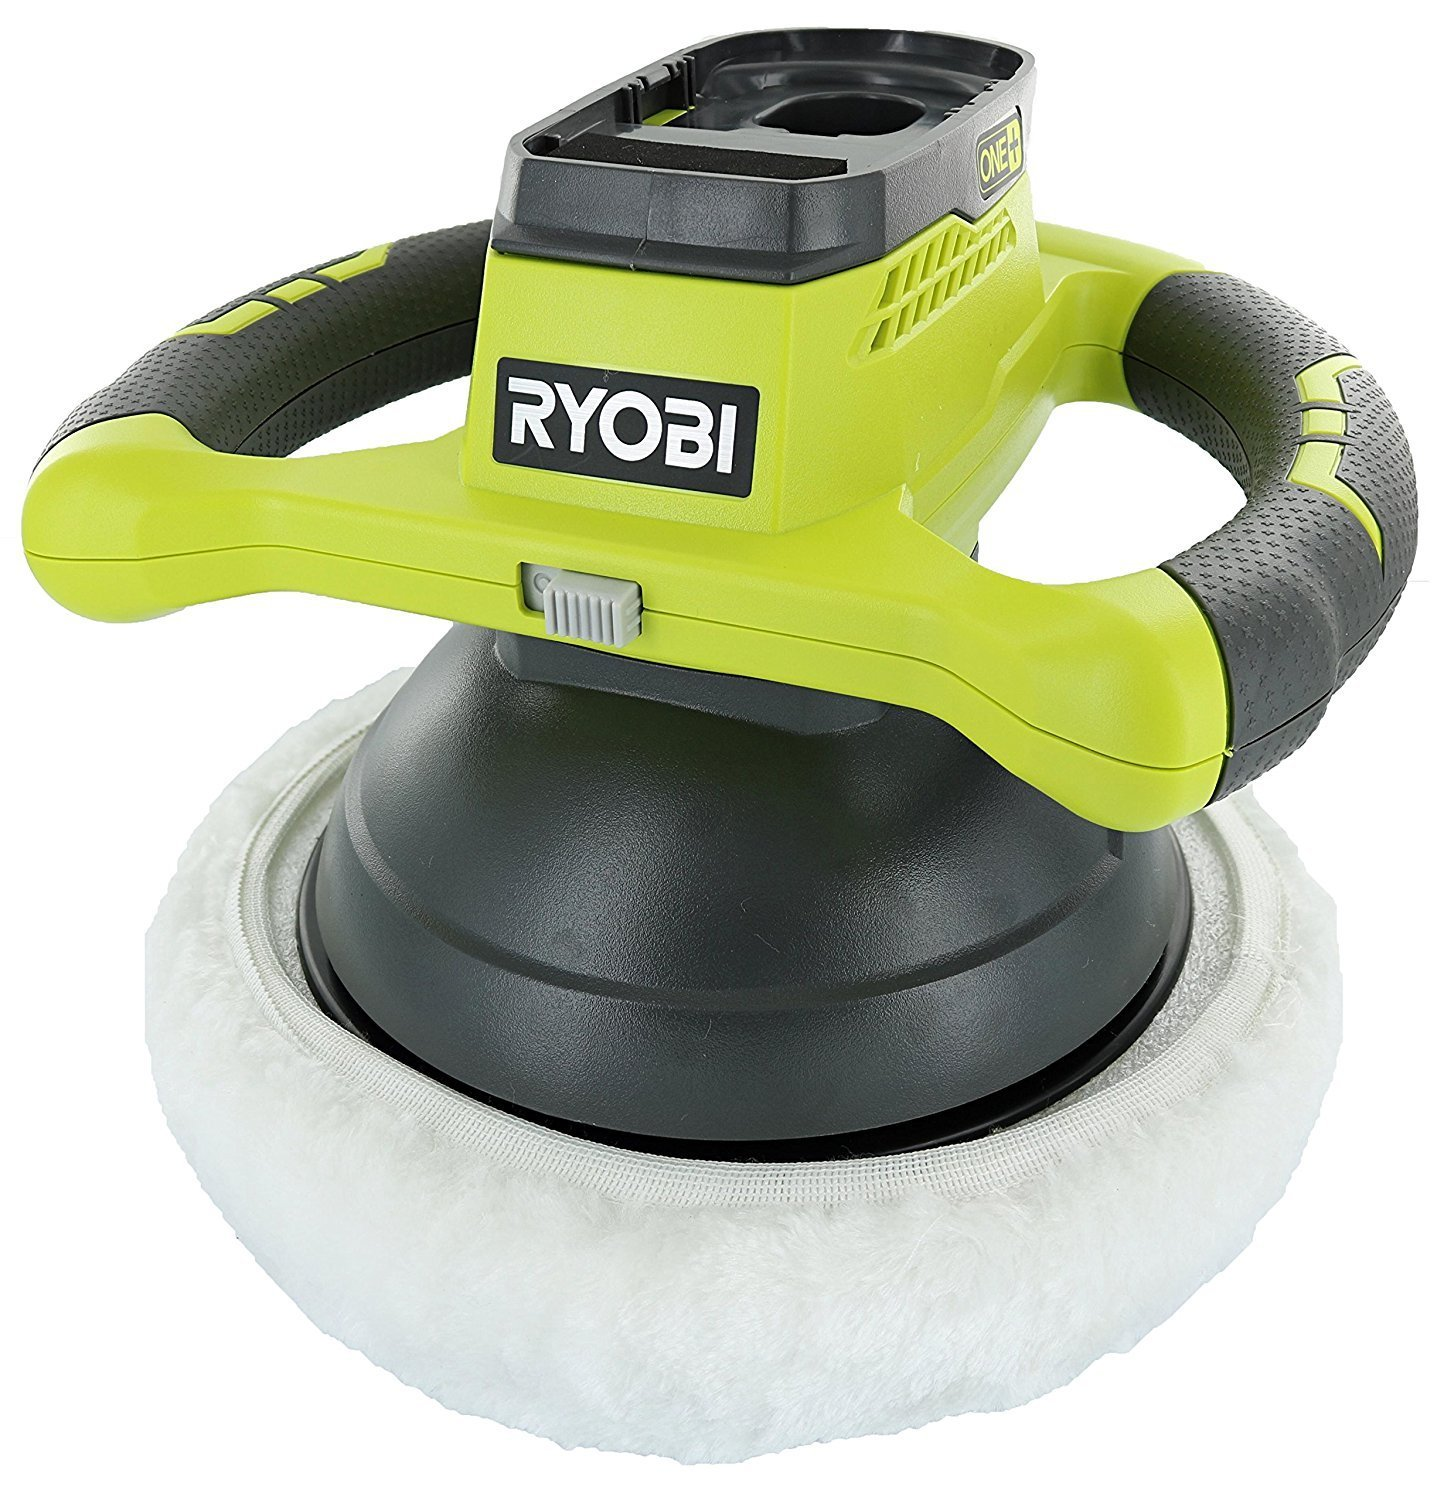 """Ryobi P435 One+ 18V Lithium Ion 10"""" 2500 RPM Cordless Orbital Buffer/Polisher with 2 Bonnets (Battery Not Included, Power Tool Only)"""